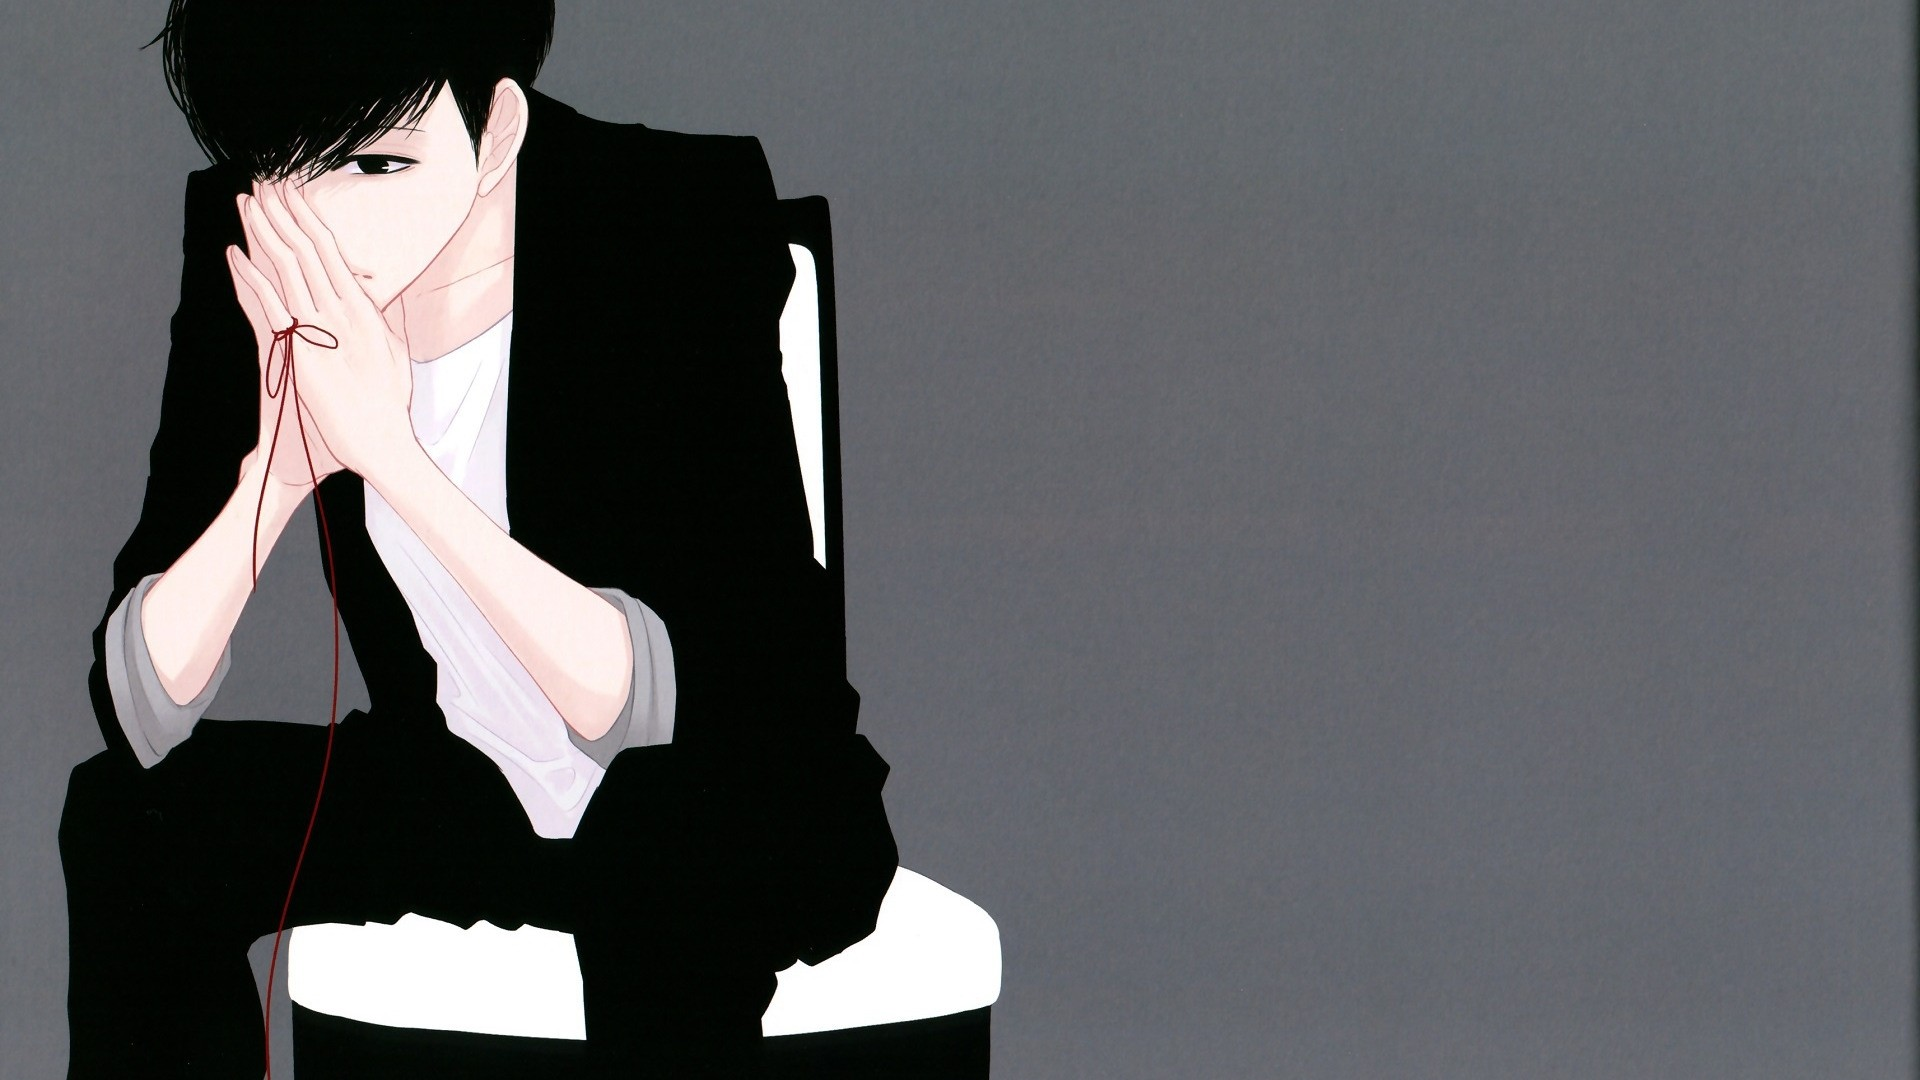 Anime Guy With Black Hair a wallpaper